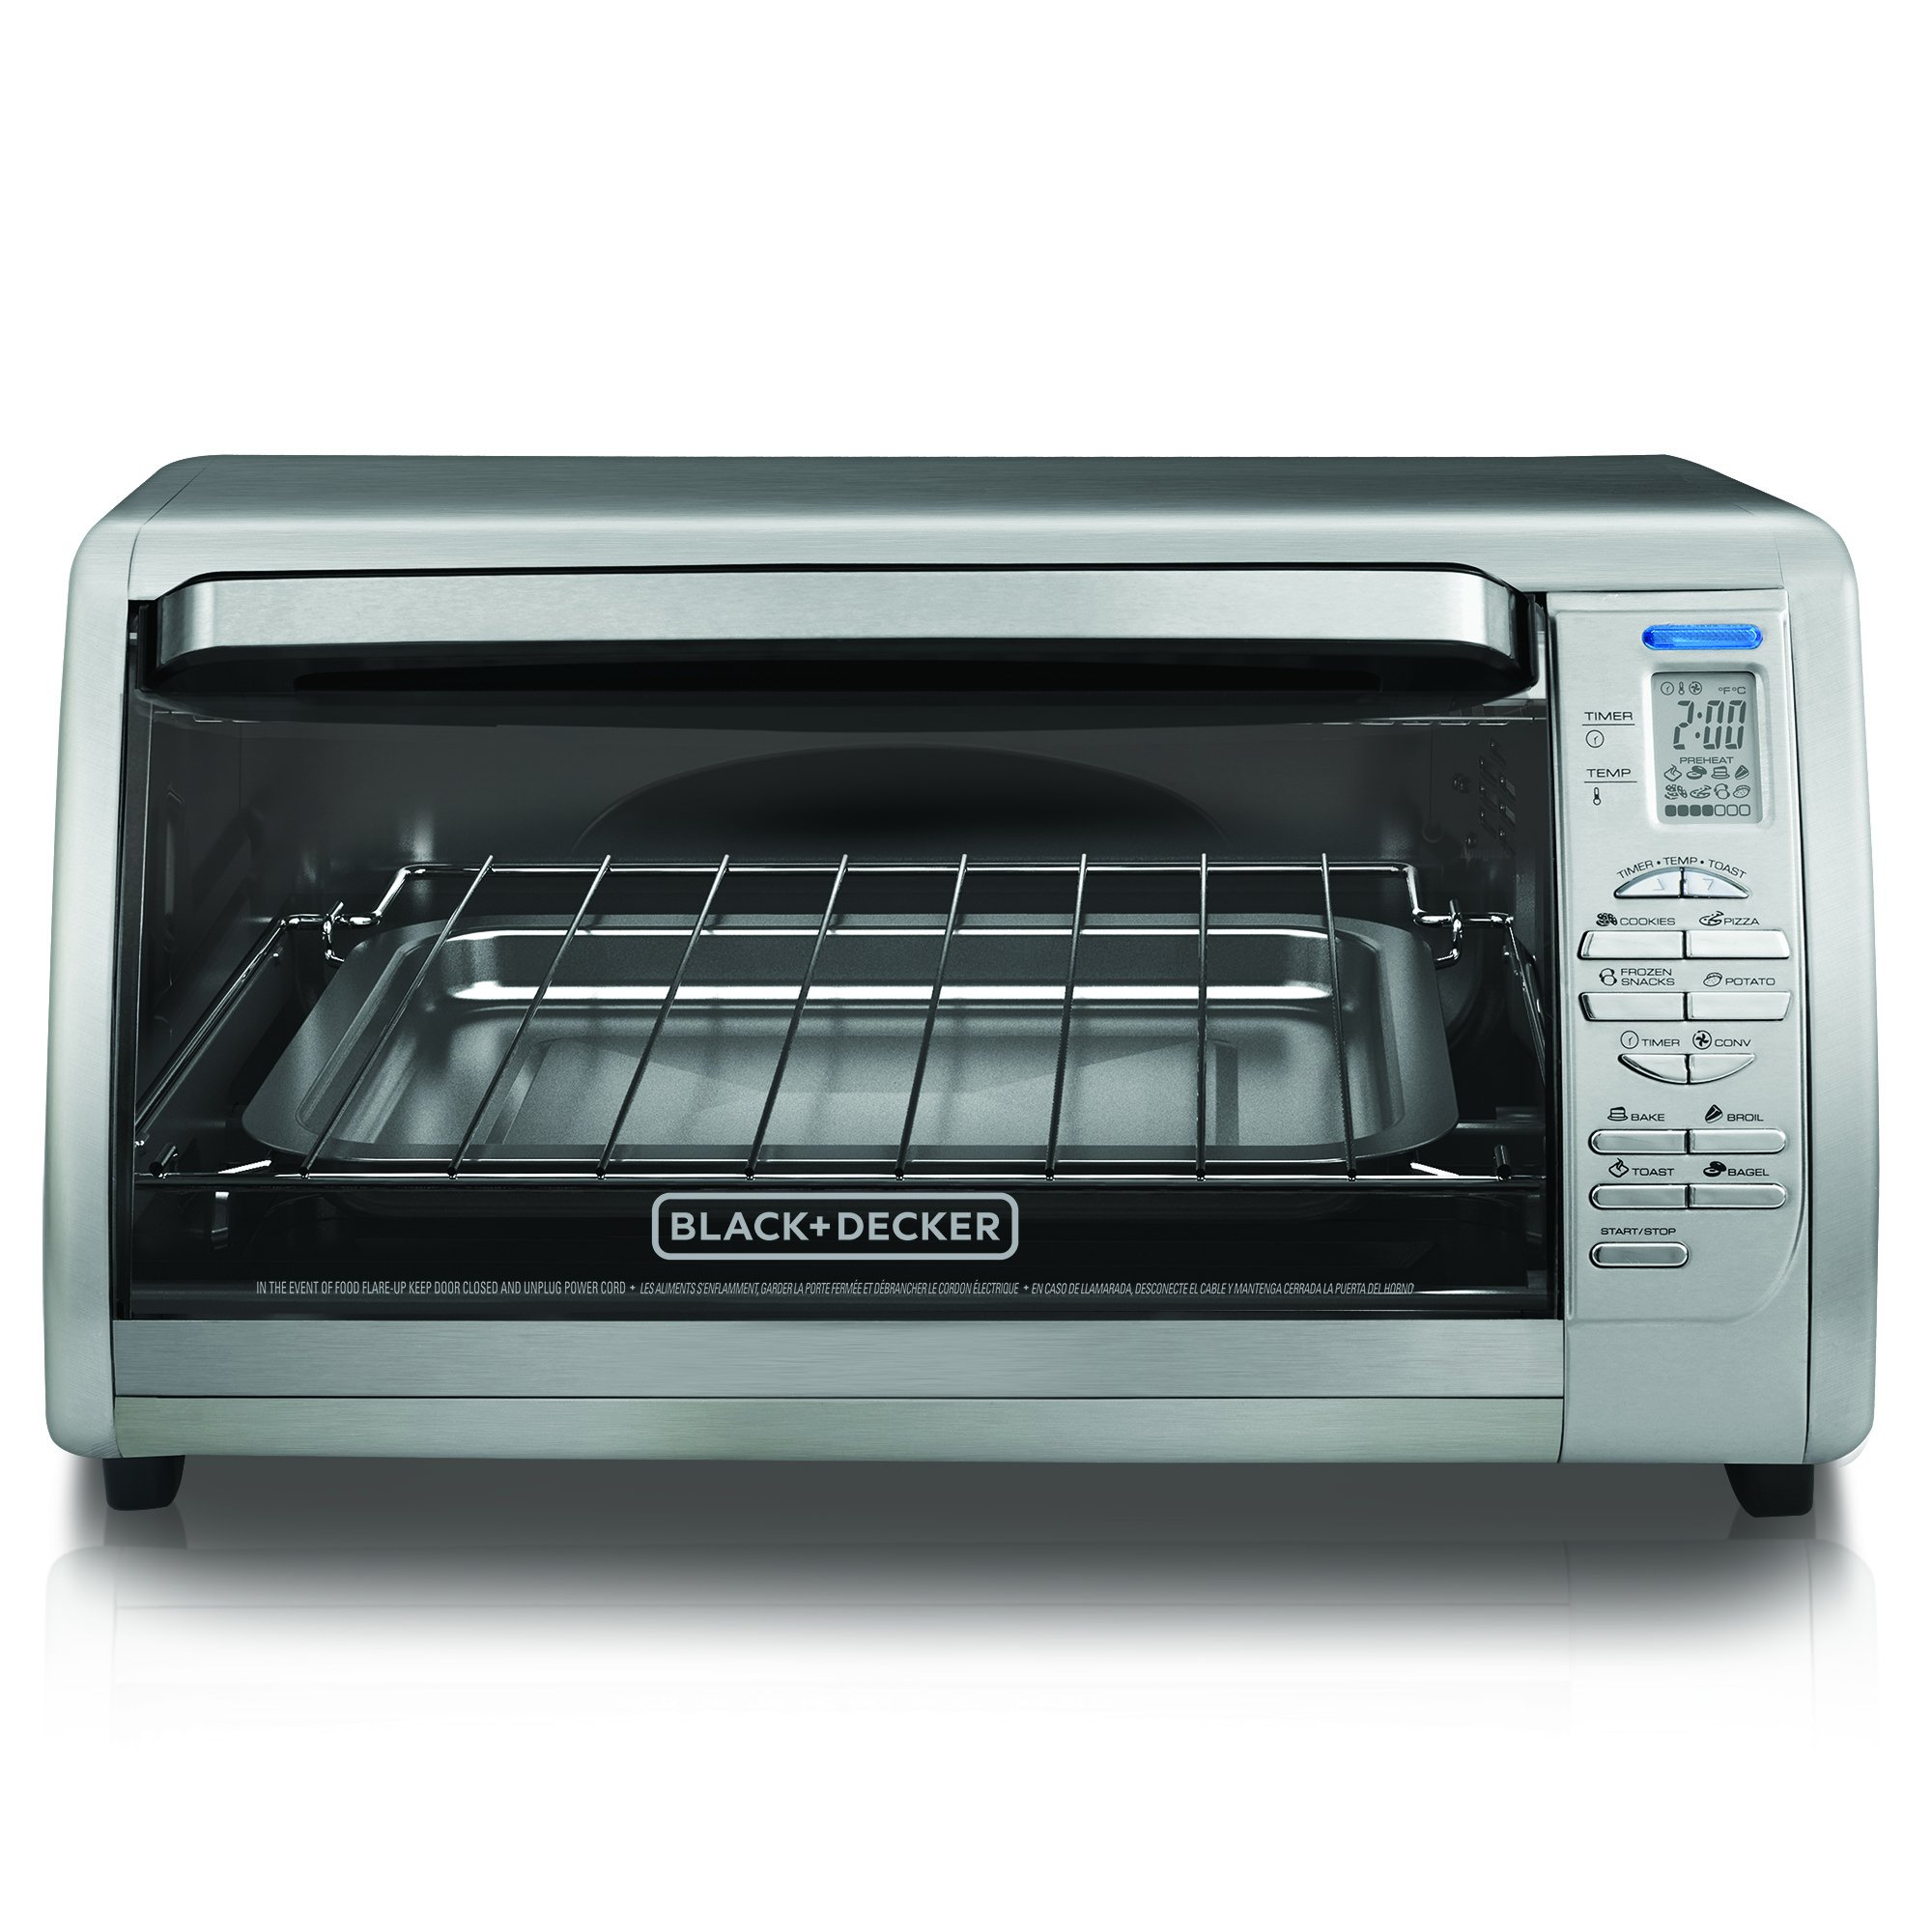 Black Decker Cto6335s Stainless Steel Countertop Convection Oven Silver Ebay